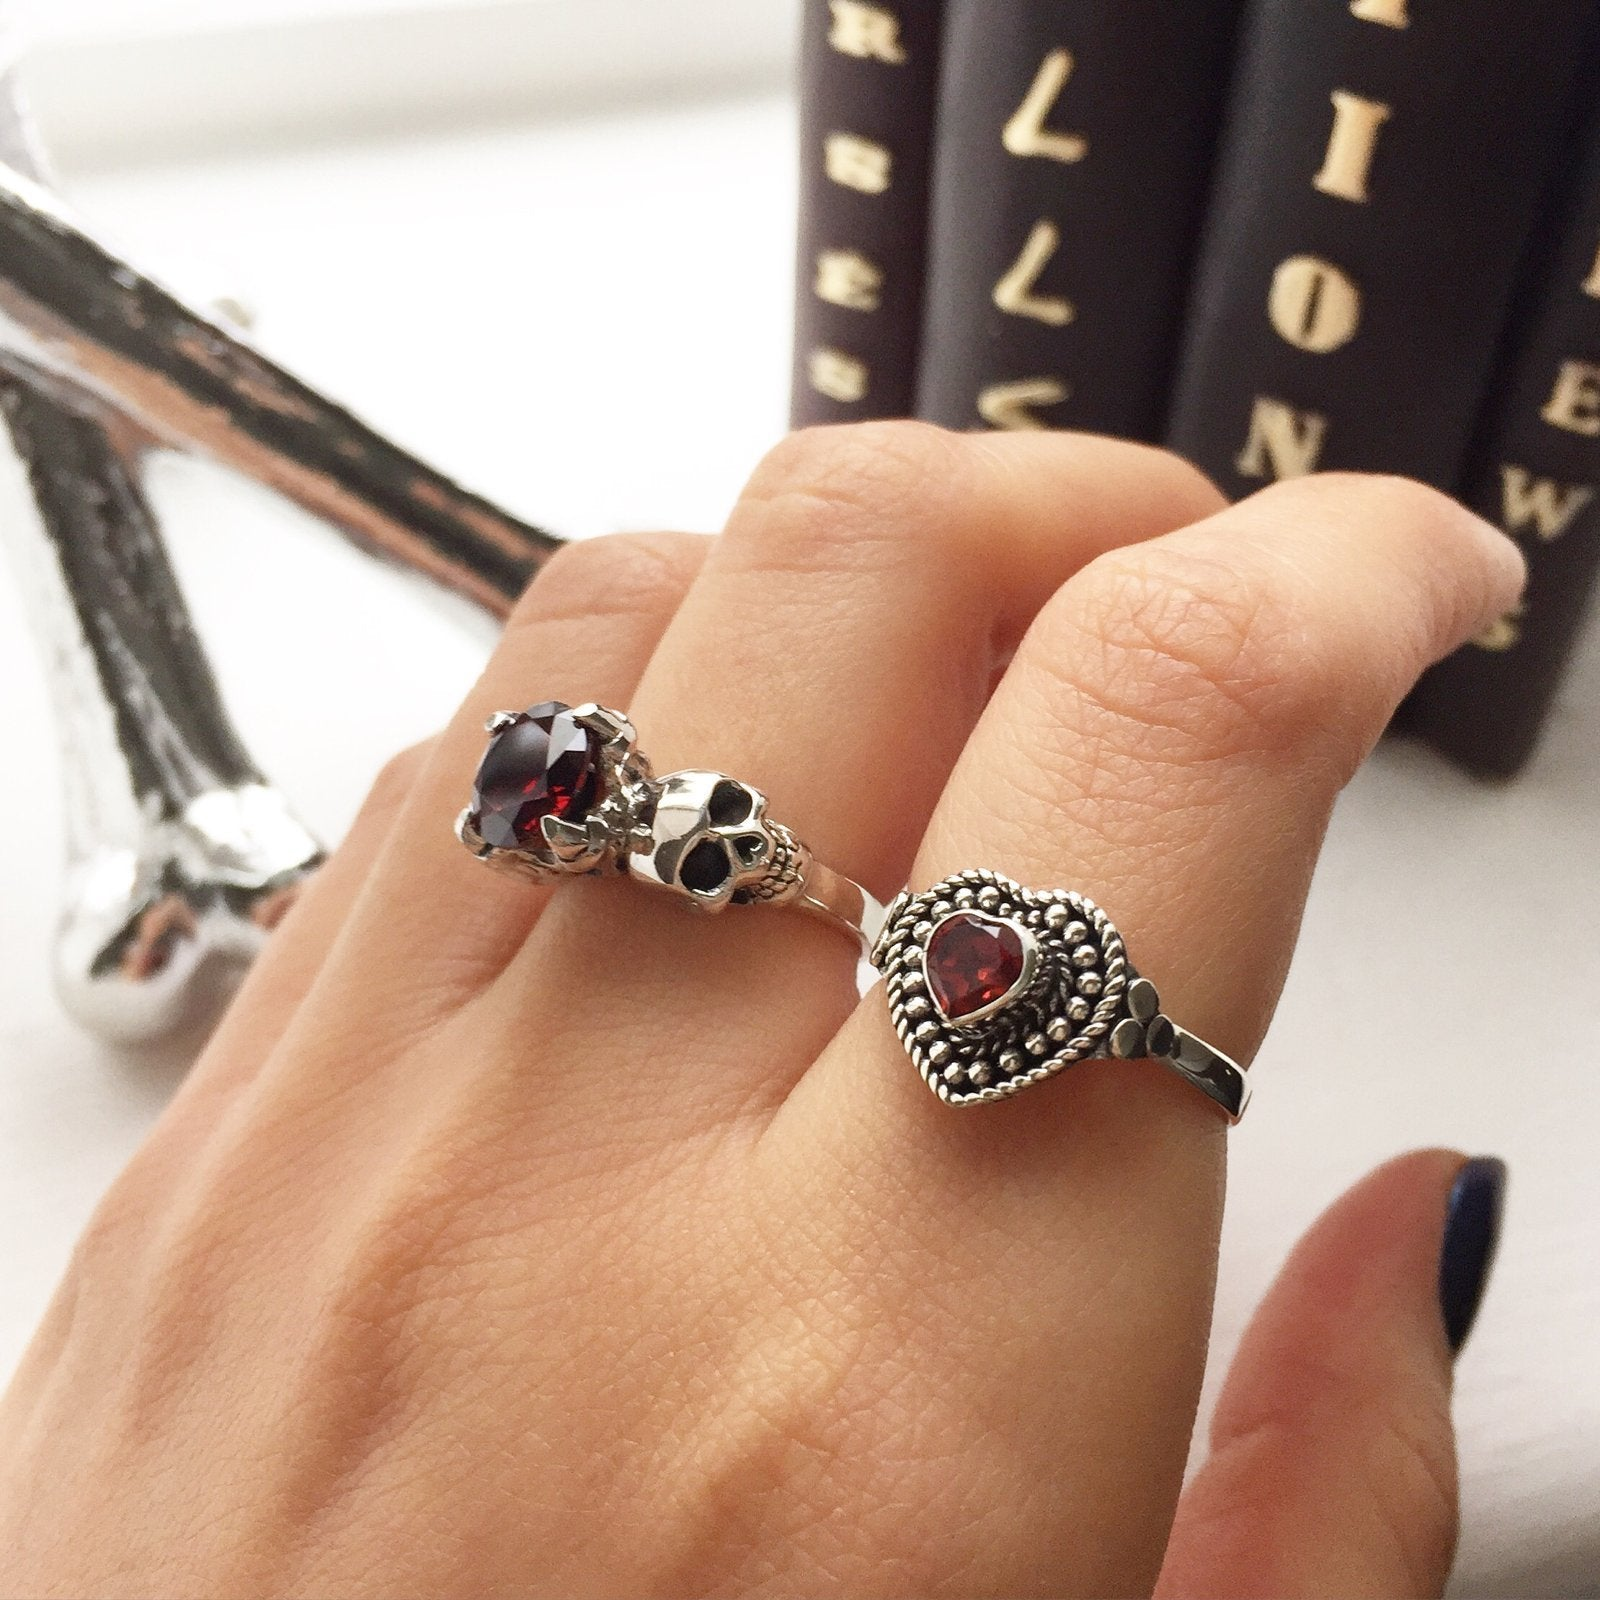 Sterling Silver & Garnet 'Till Death' Ring